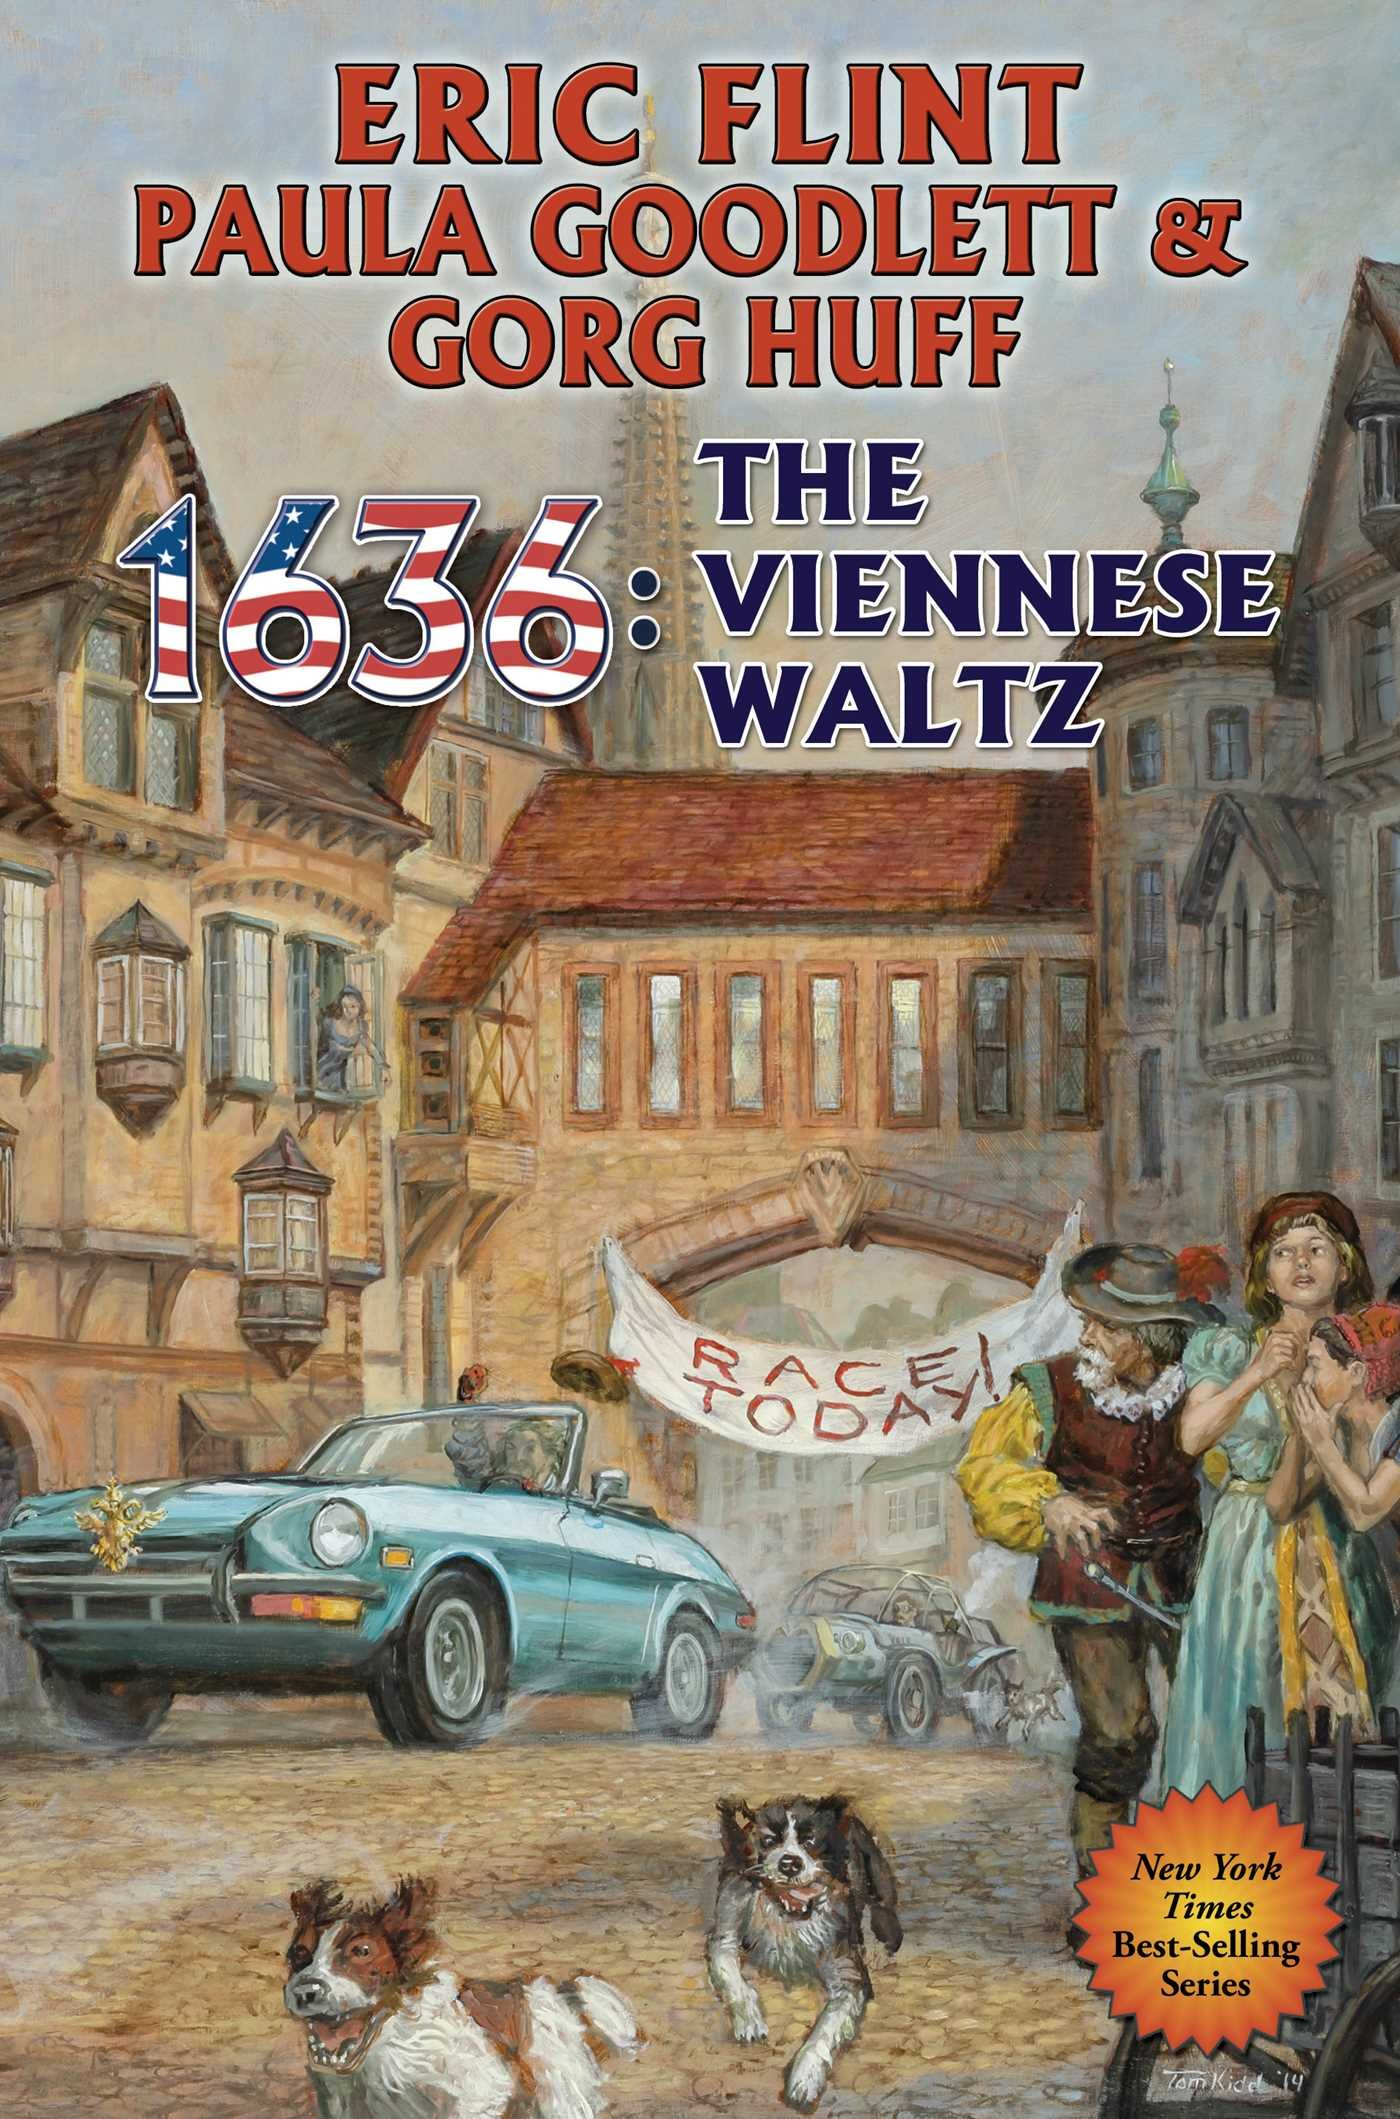 1636: The Viennese Waltz (The Ring of Fire): Eric Flint, Gorg Huff, Paula  Goodlett: 9781476781013: Amazon.com: Books